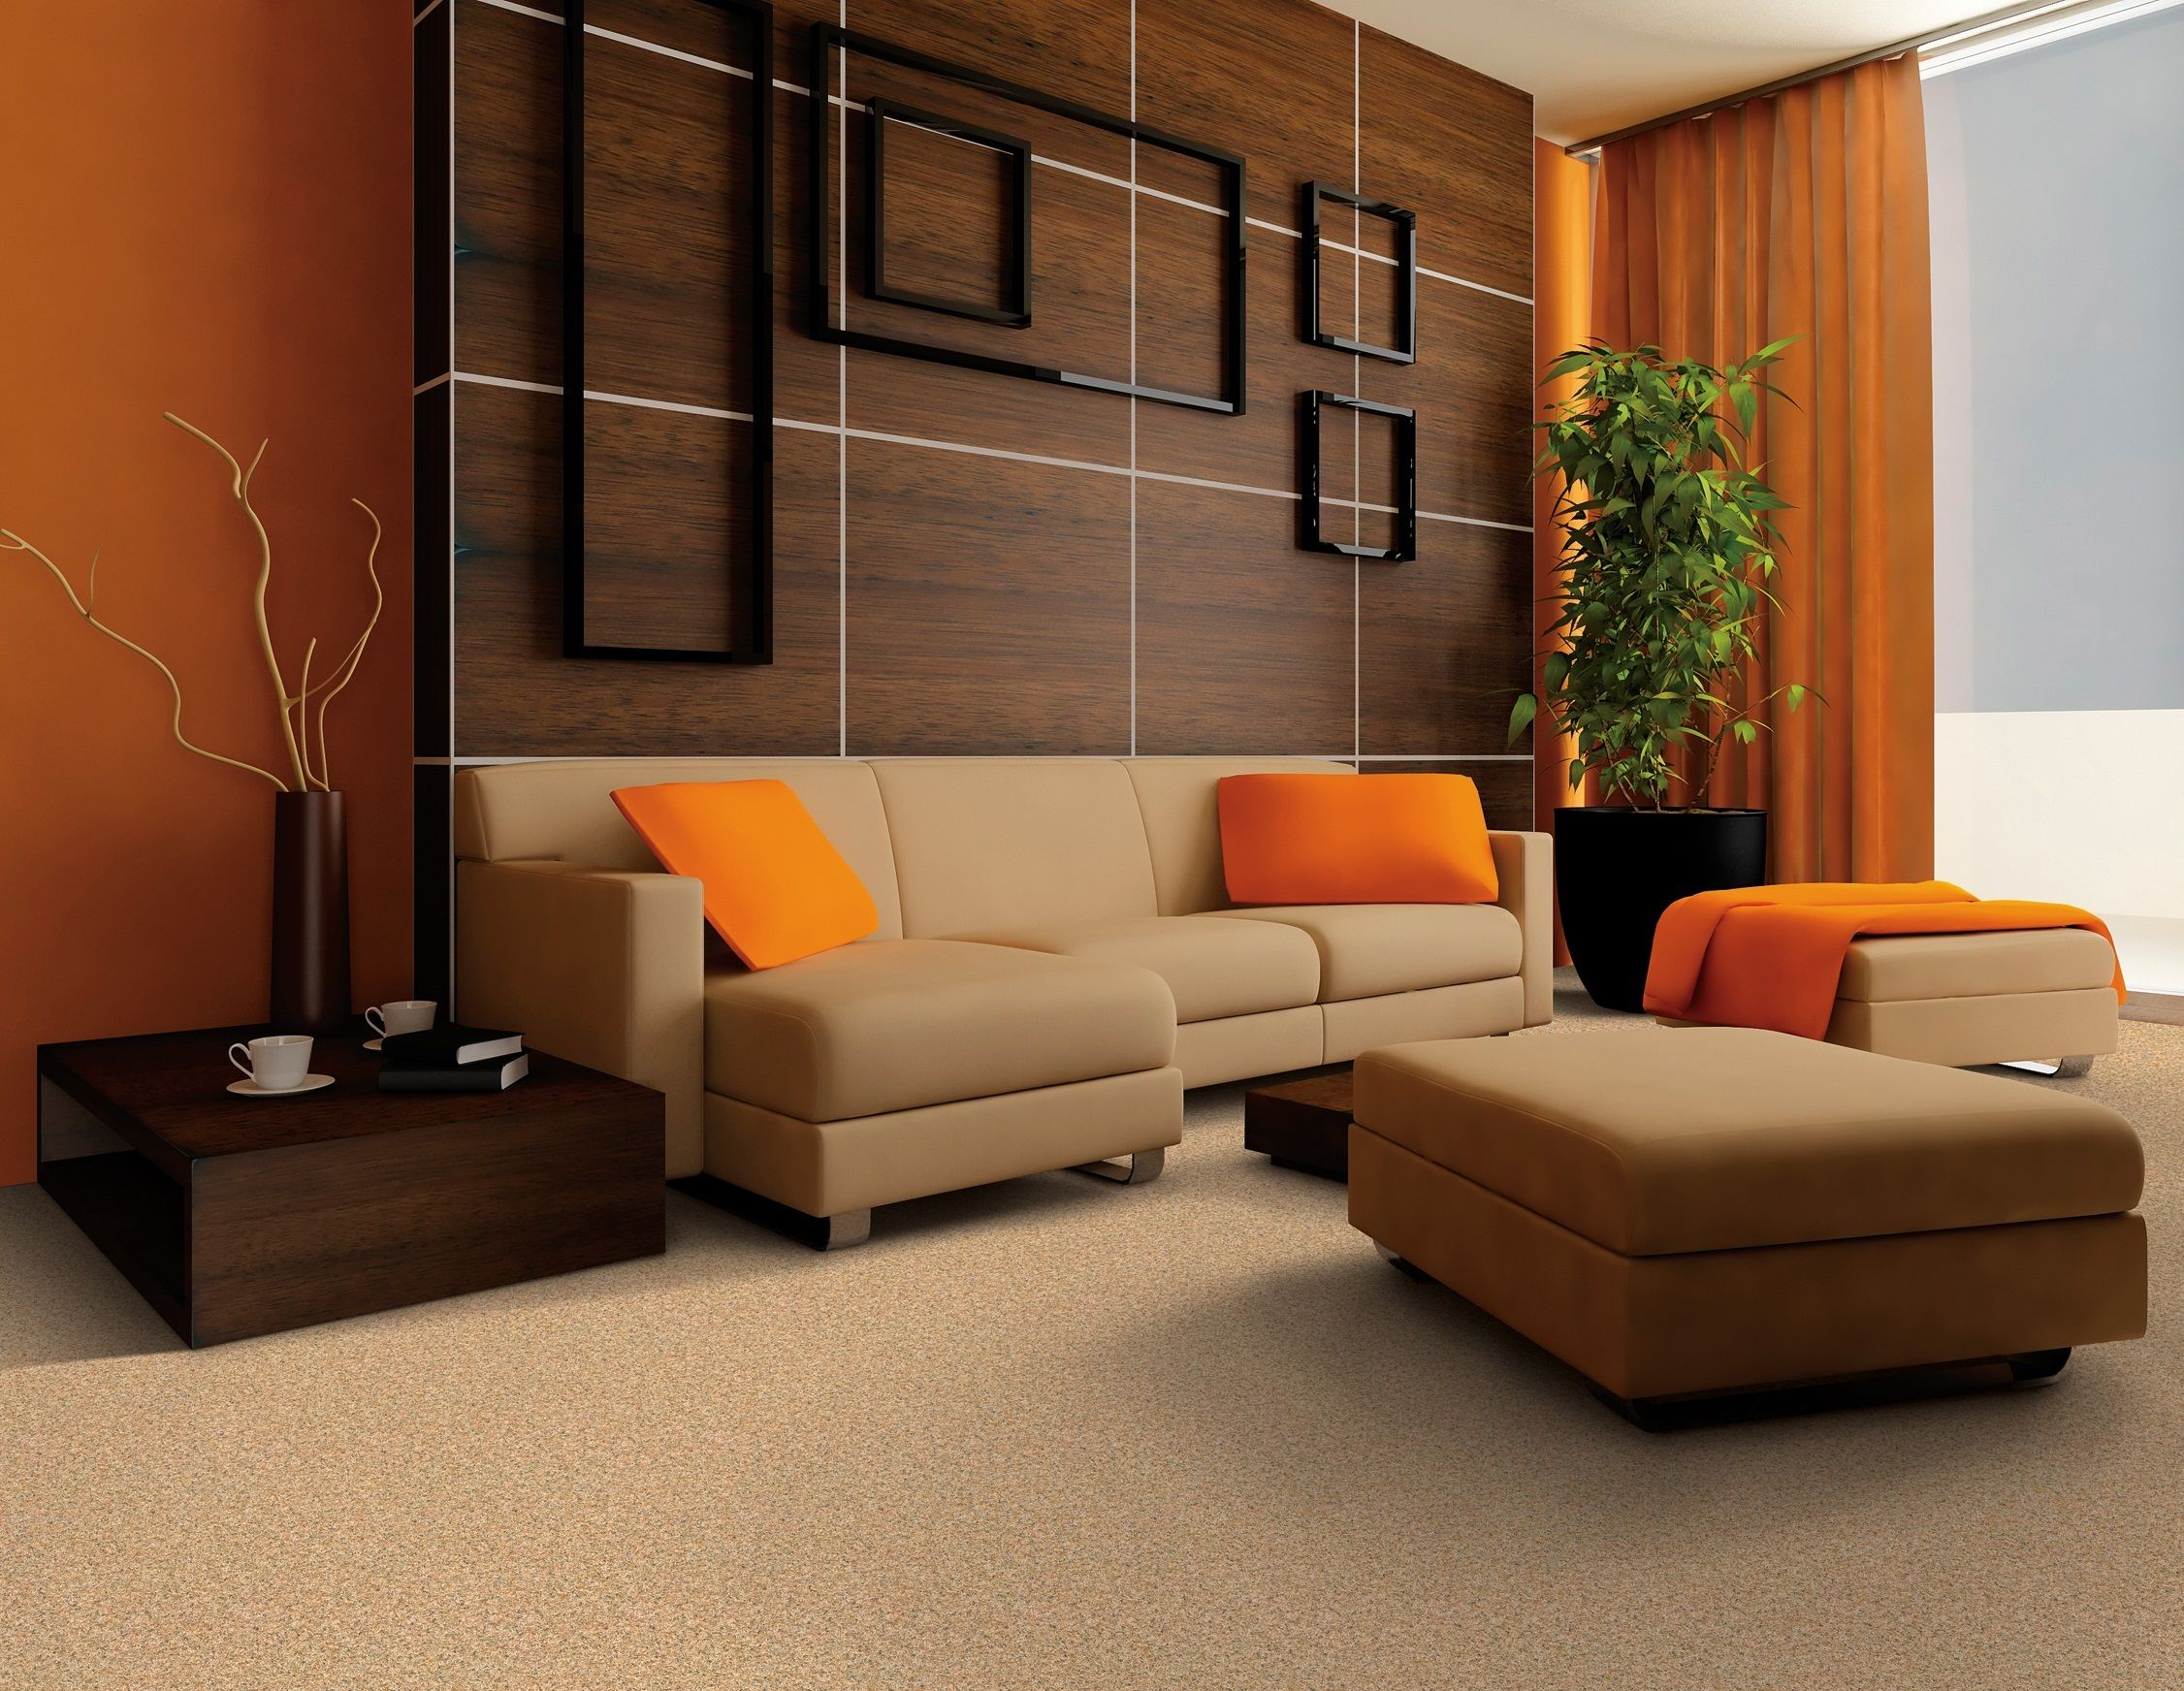 Warm Color Wall Paint And Brown Shades Sofa Design Ideas For Living Room Decoration